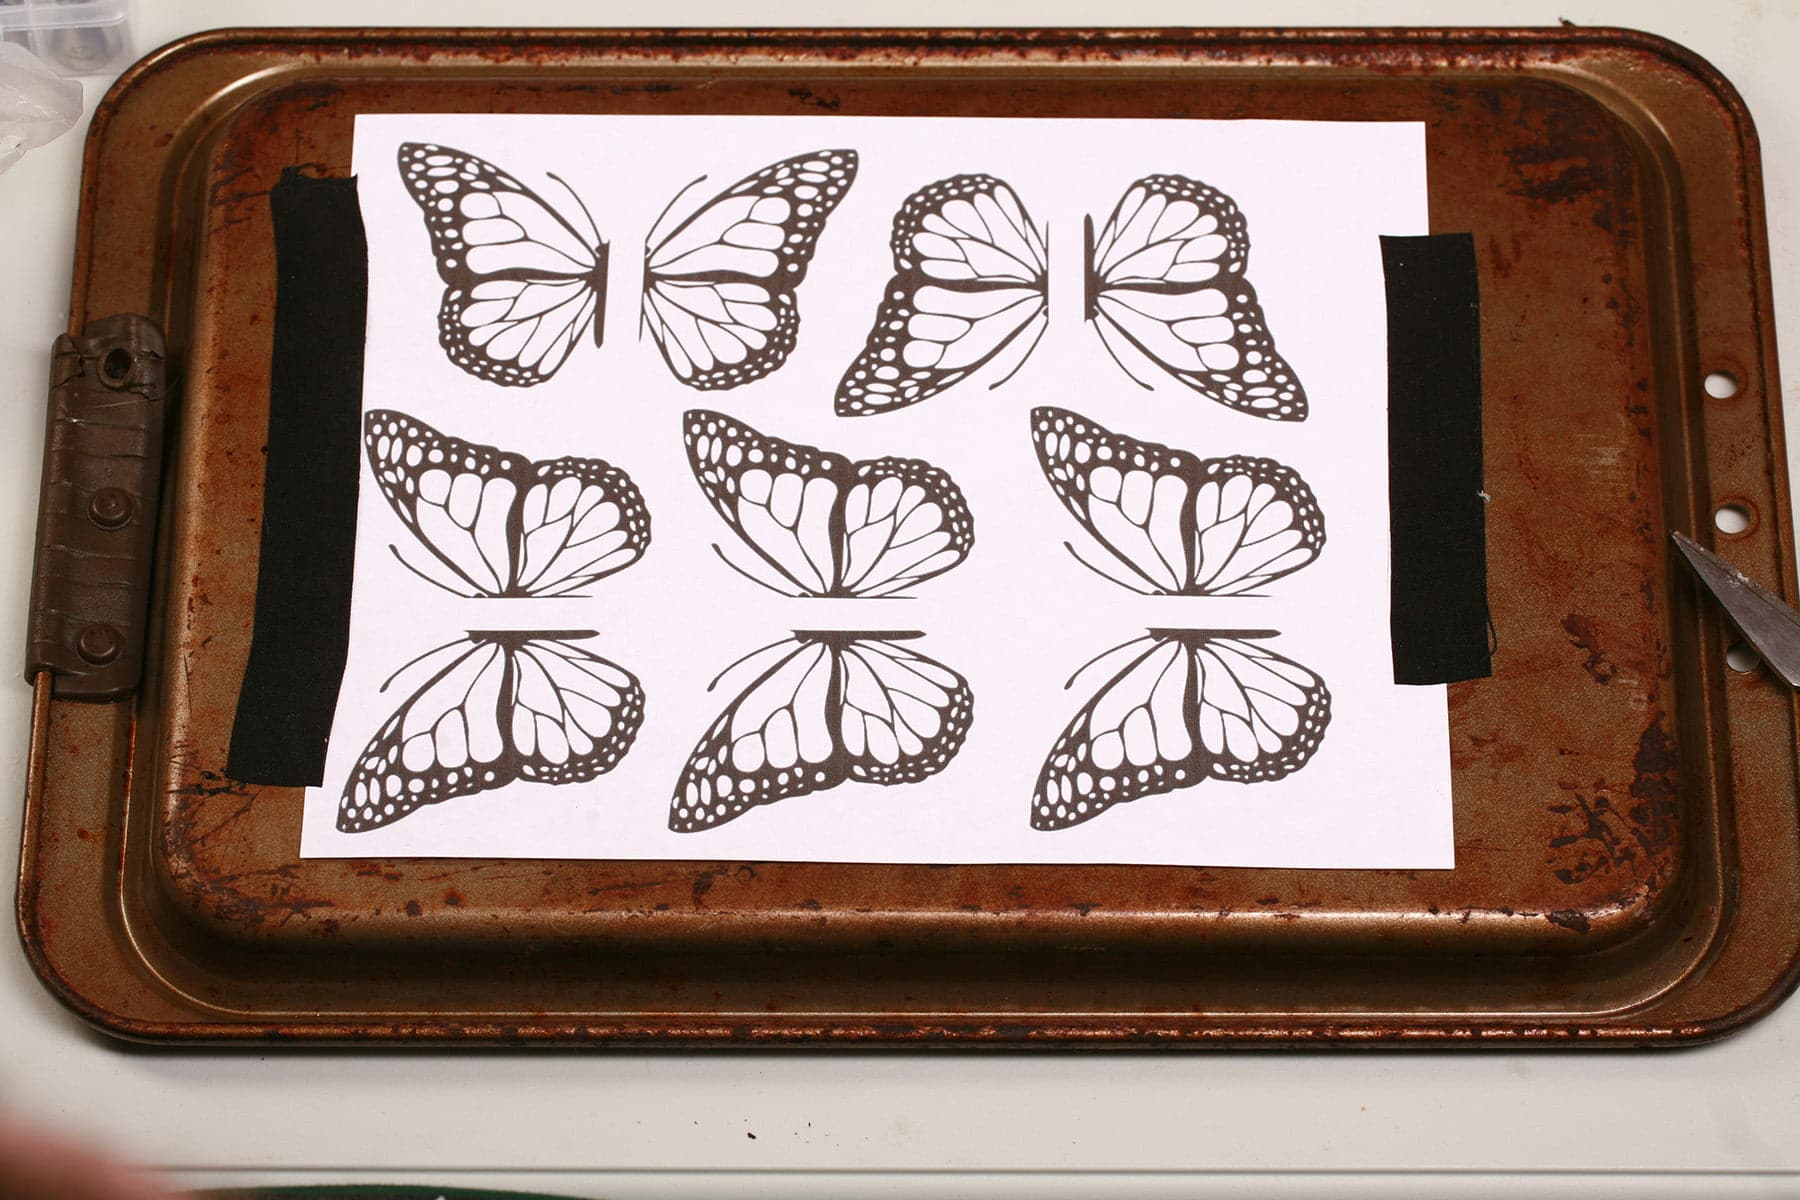 A sheet of paper printed with outline drawings of monarch butterfly wings, taped to the back of a baking sheet.